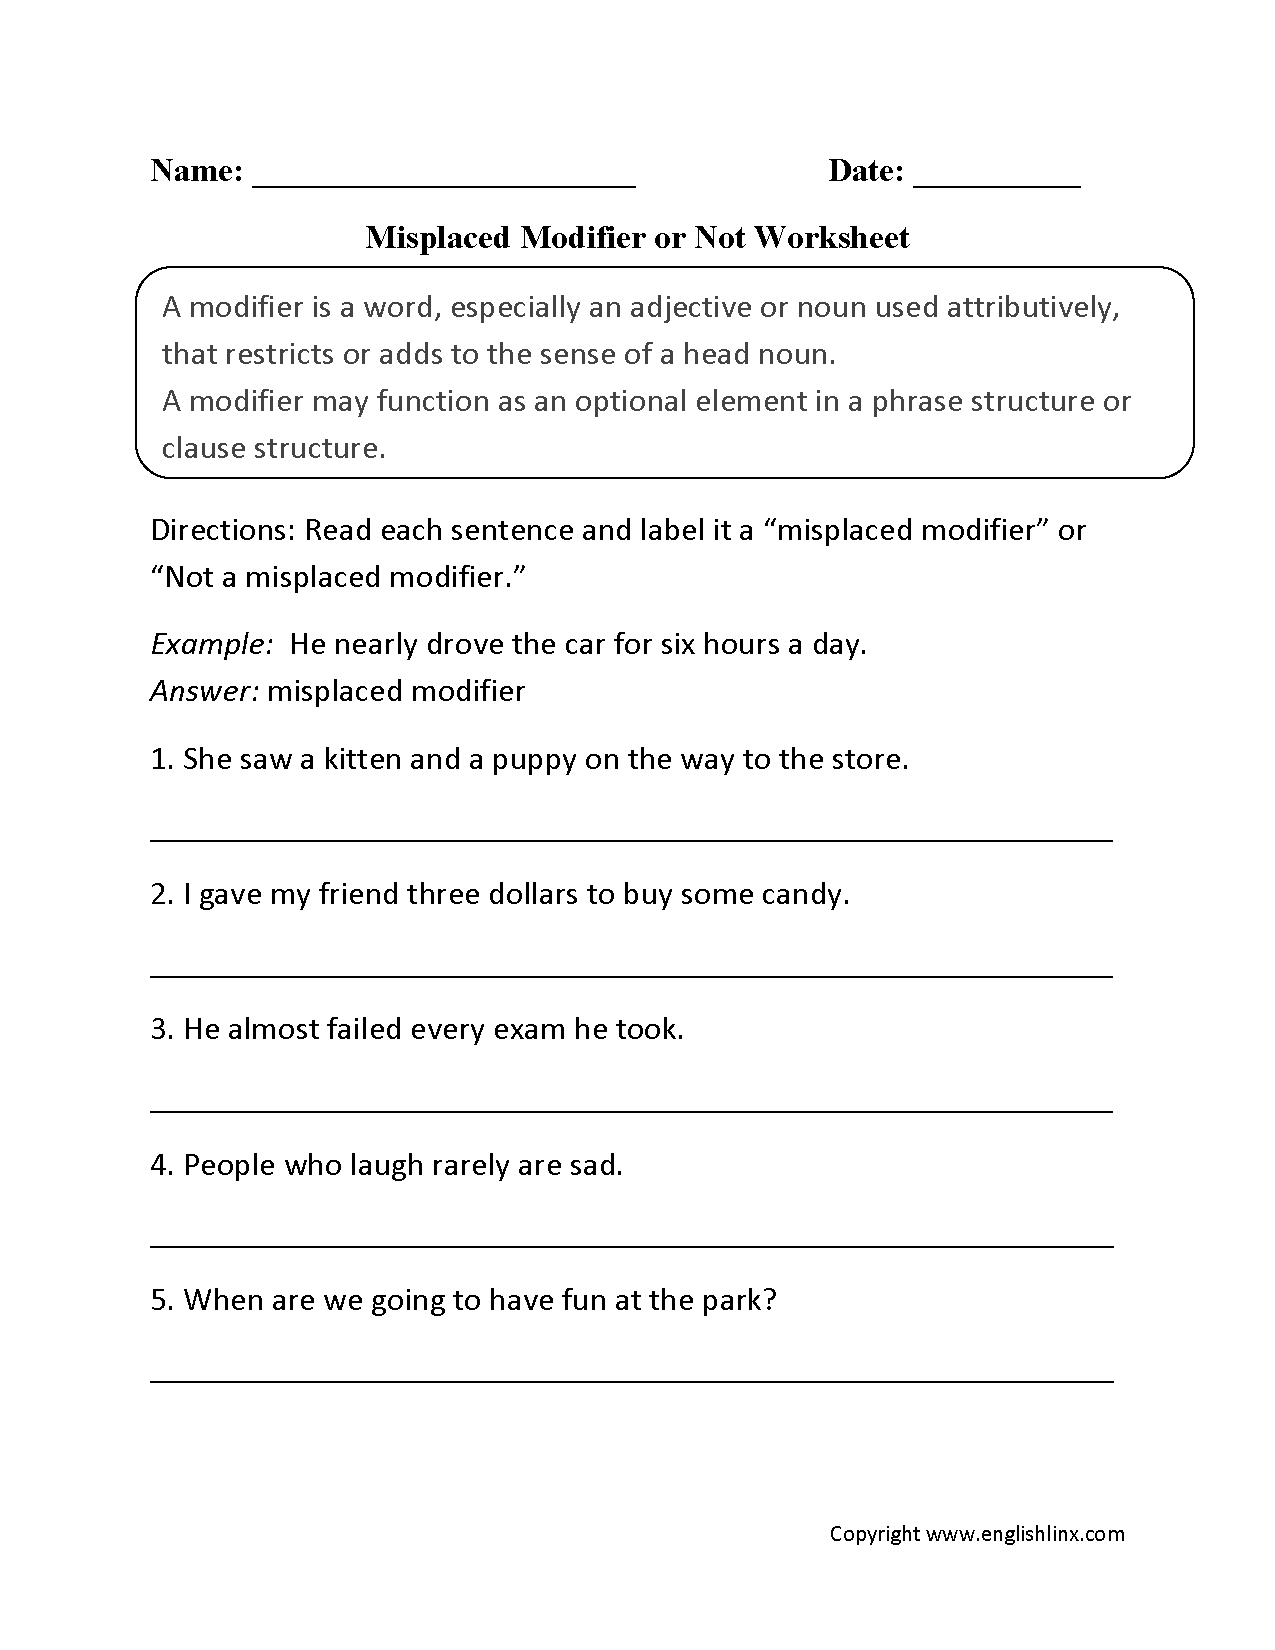 Worksheets Misplaced Modifier Worksheet word usage worksheets using modifiers worksheets